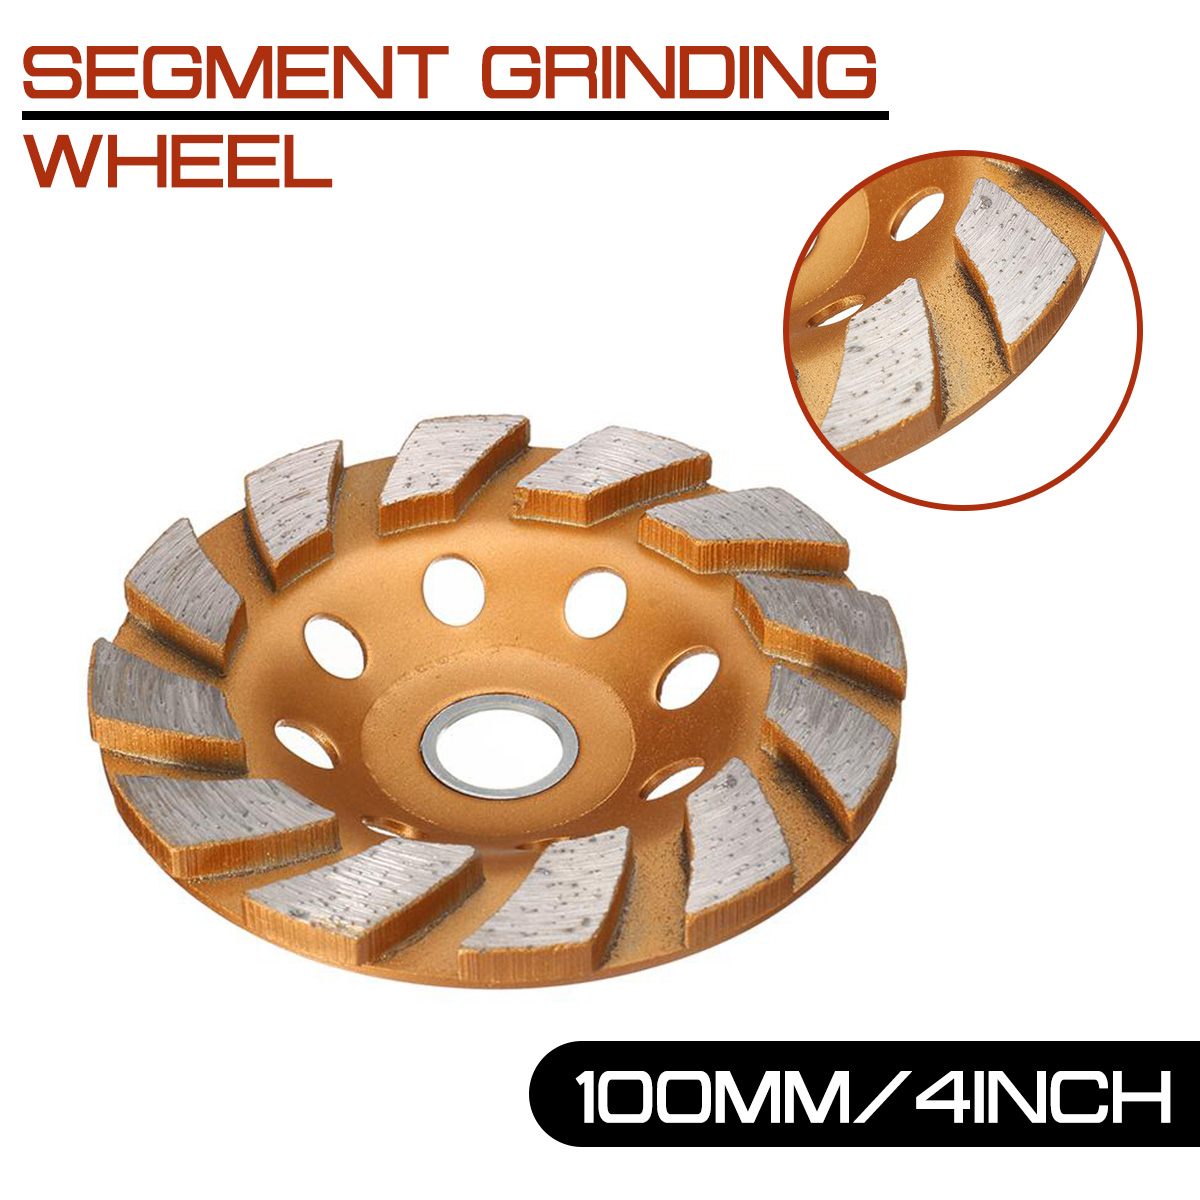 100mm/4inch Segment Grinding Wheel  HGS 8 Holes Diamond Grind Cup Disc Concrete Granite Stone Grinder DIY Power Tool